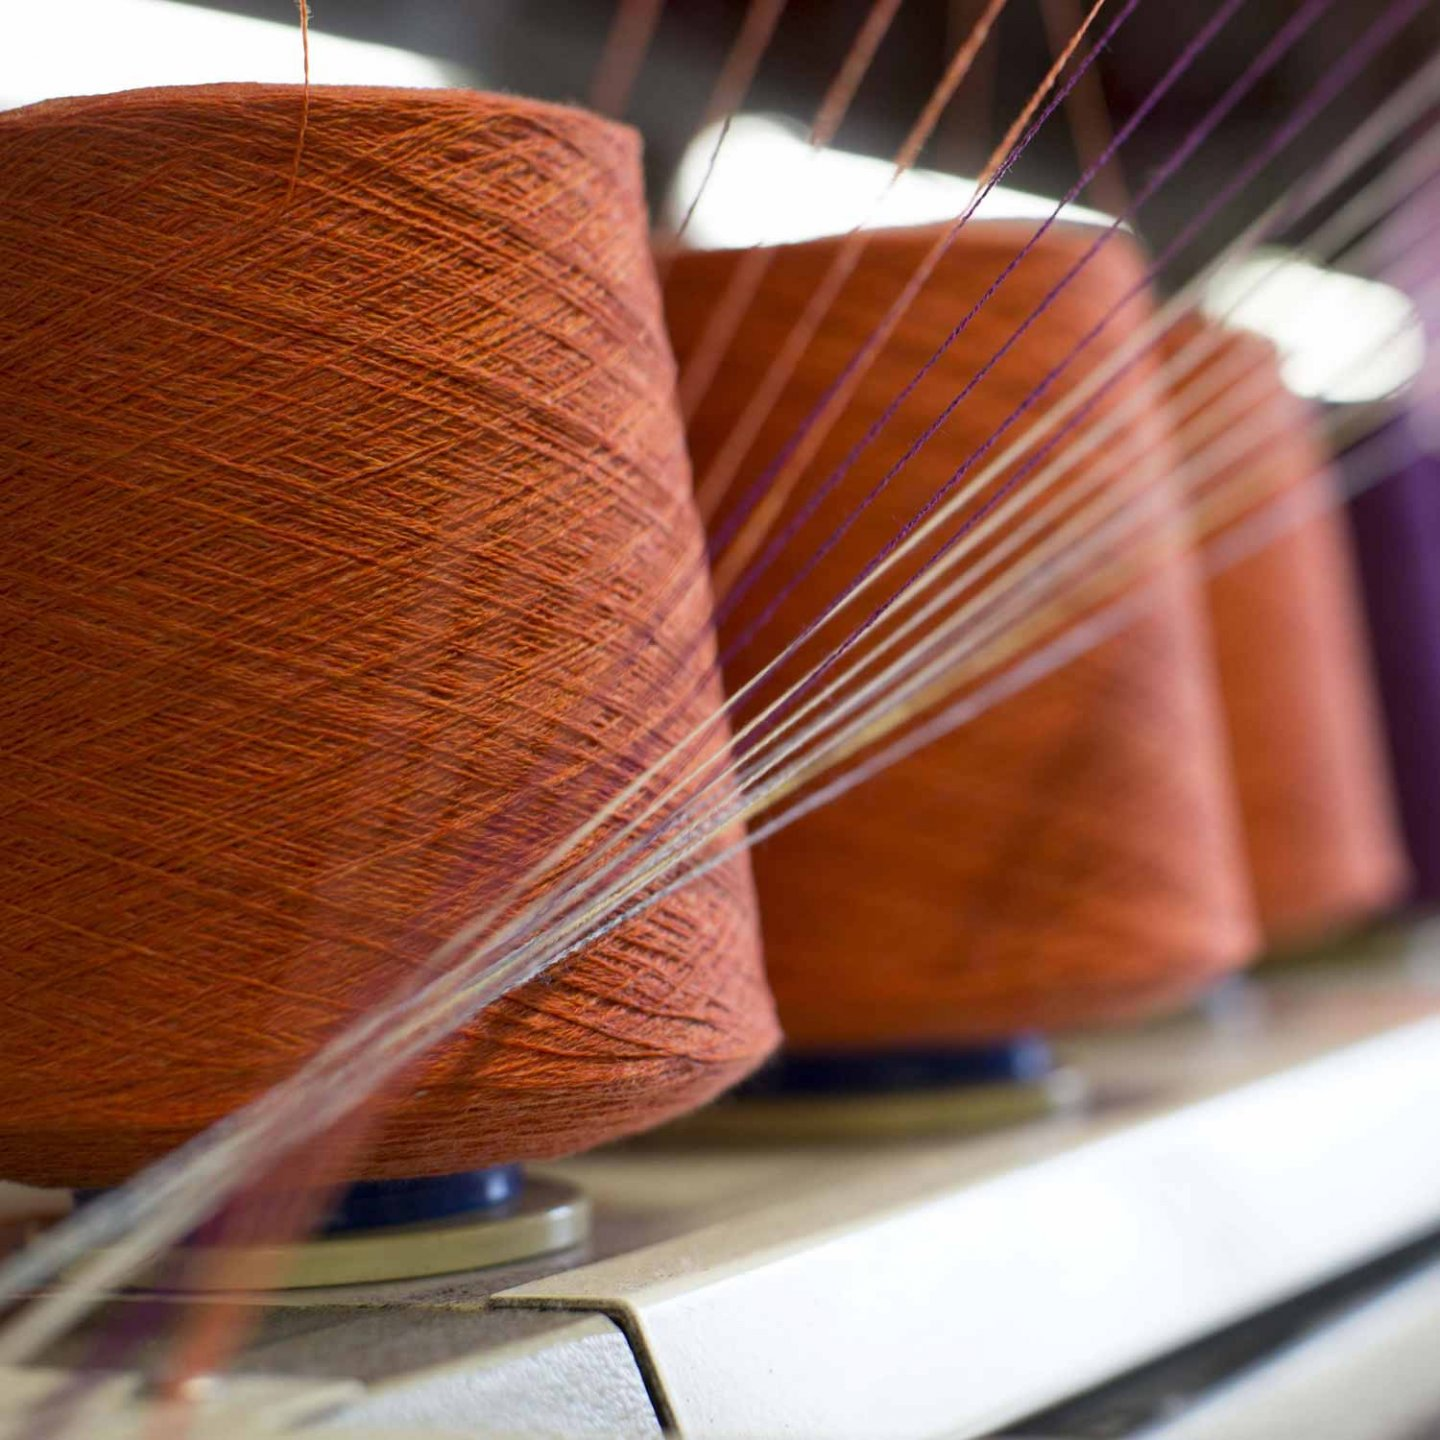 Johnstons of Elgin knitwear production facility is located in the historic town of Hawick in the beautiful Scottish Borders, known for its rich textiles heritage and the highest quality cashmere and woollen products. © Johnstons of Elgin